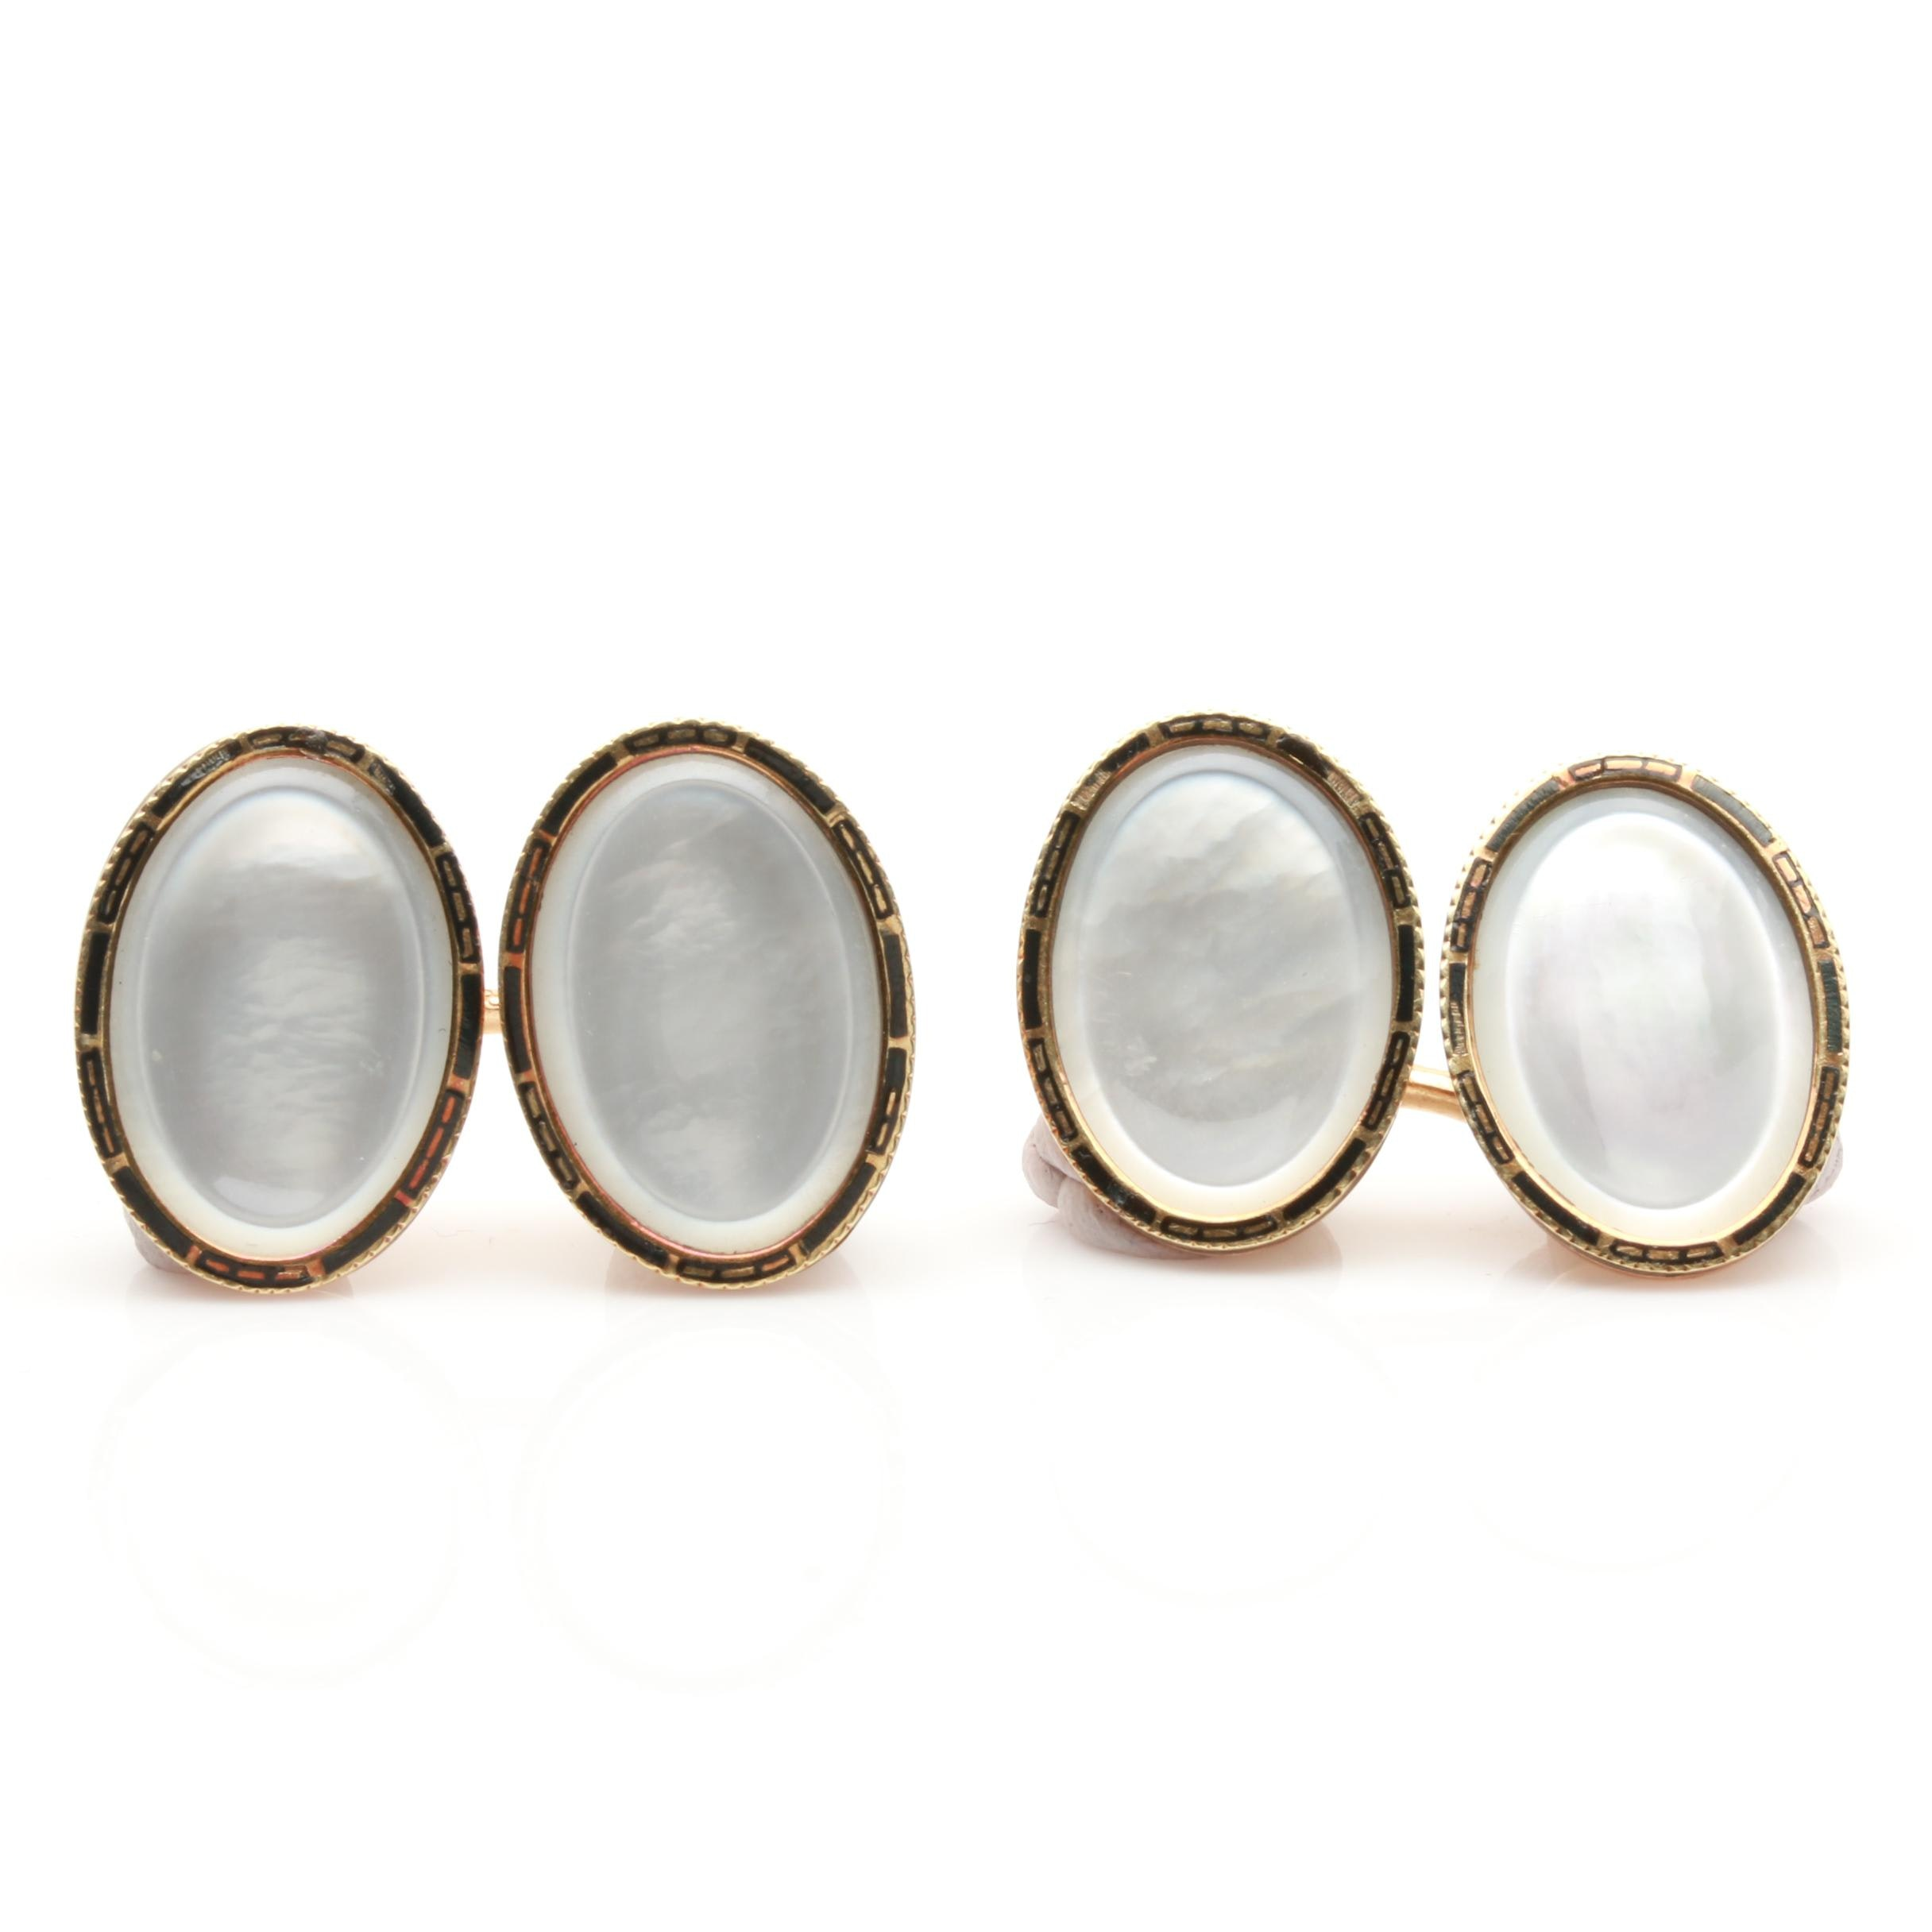 1920s Larter & Sons Mother of Pearl Cufflinks